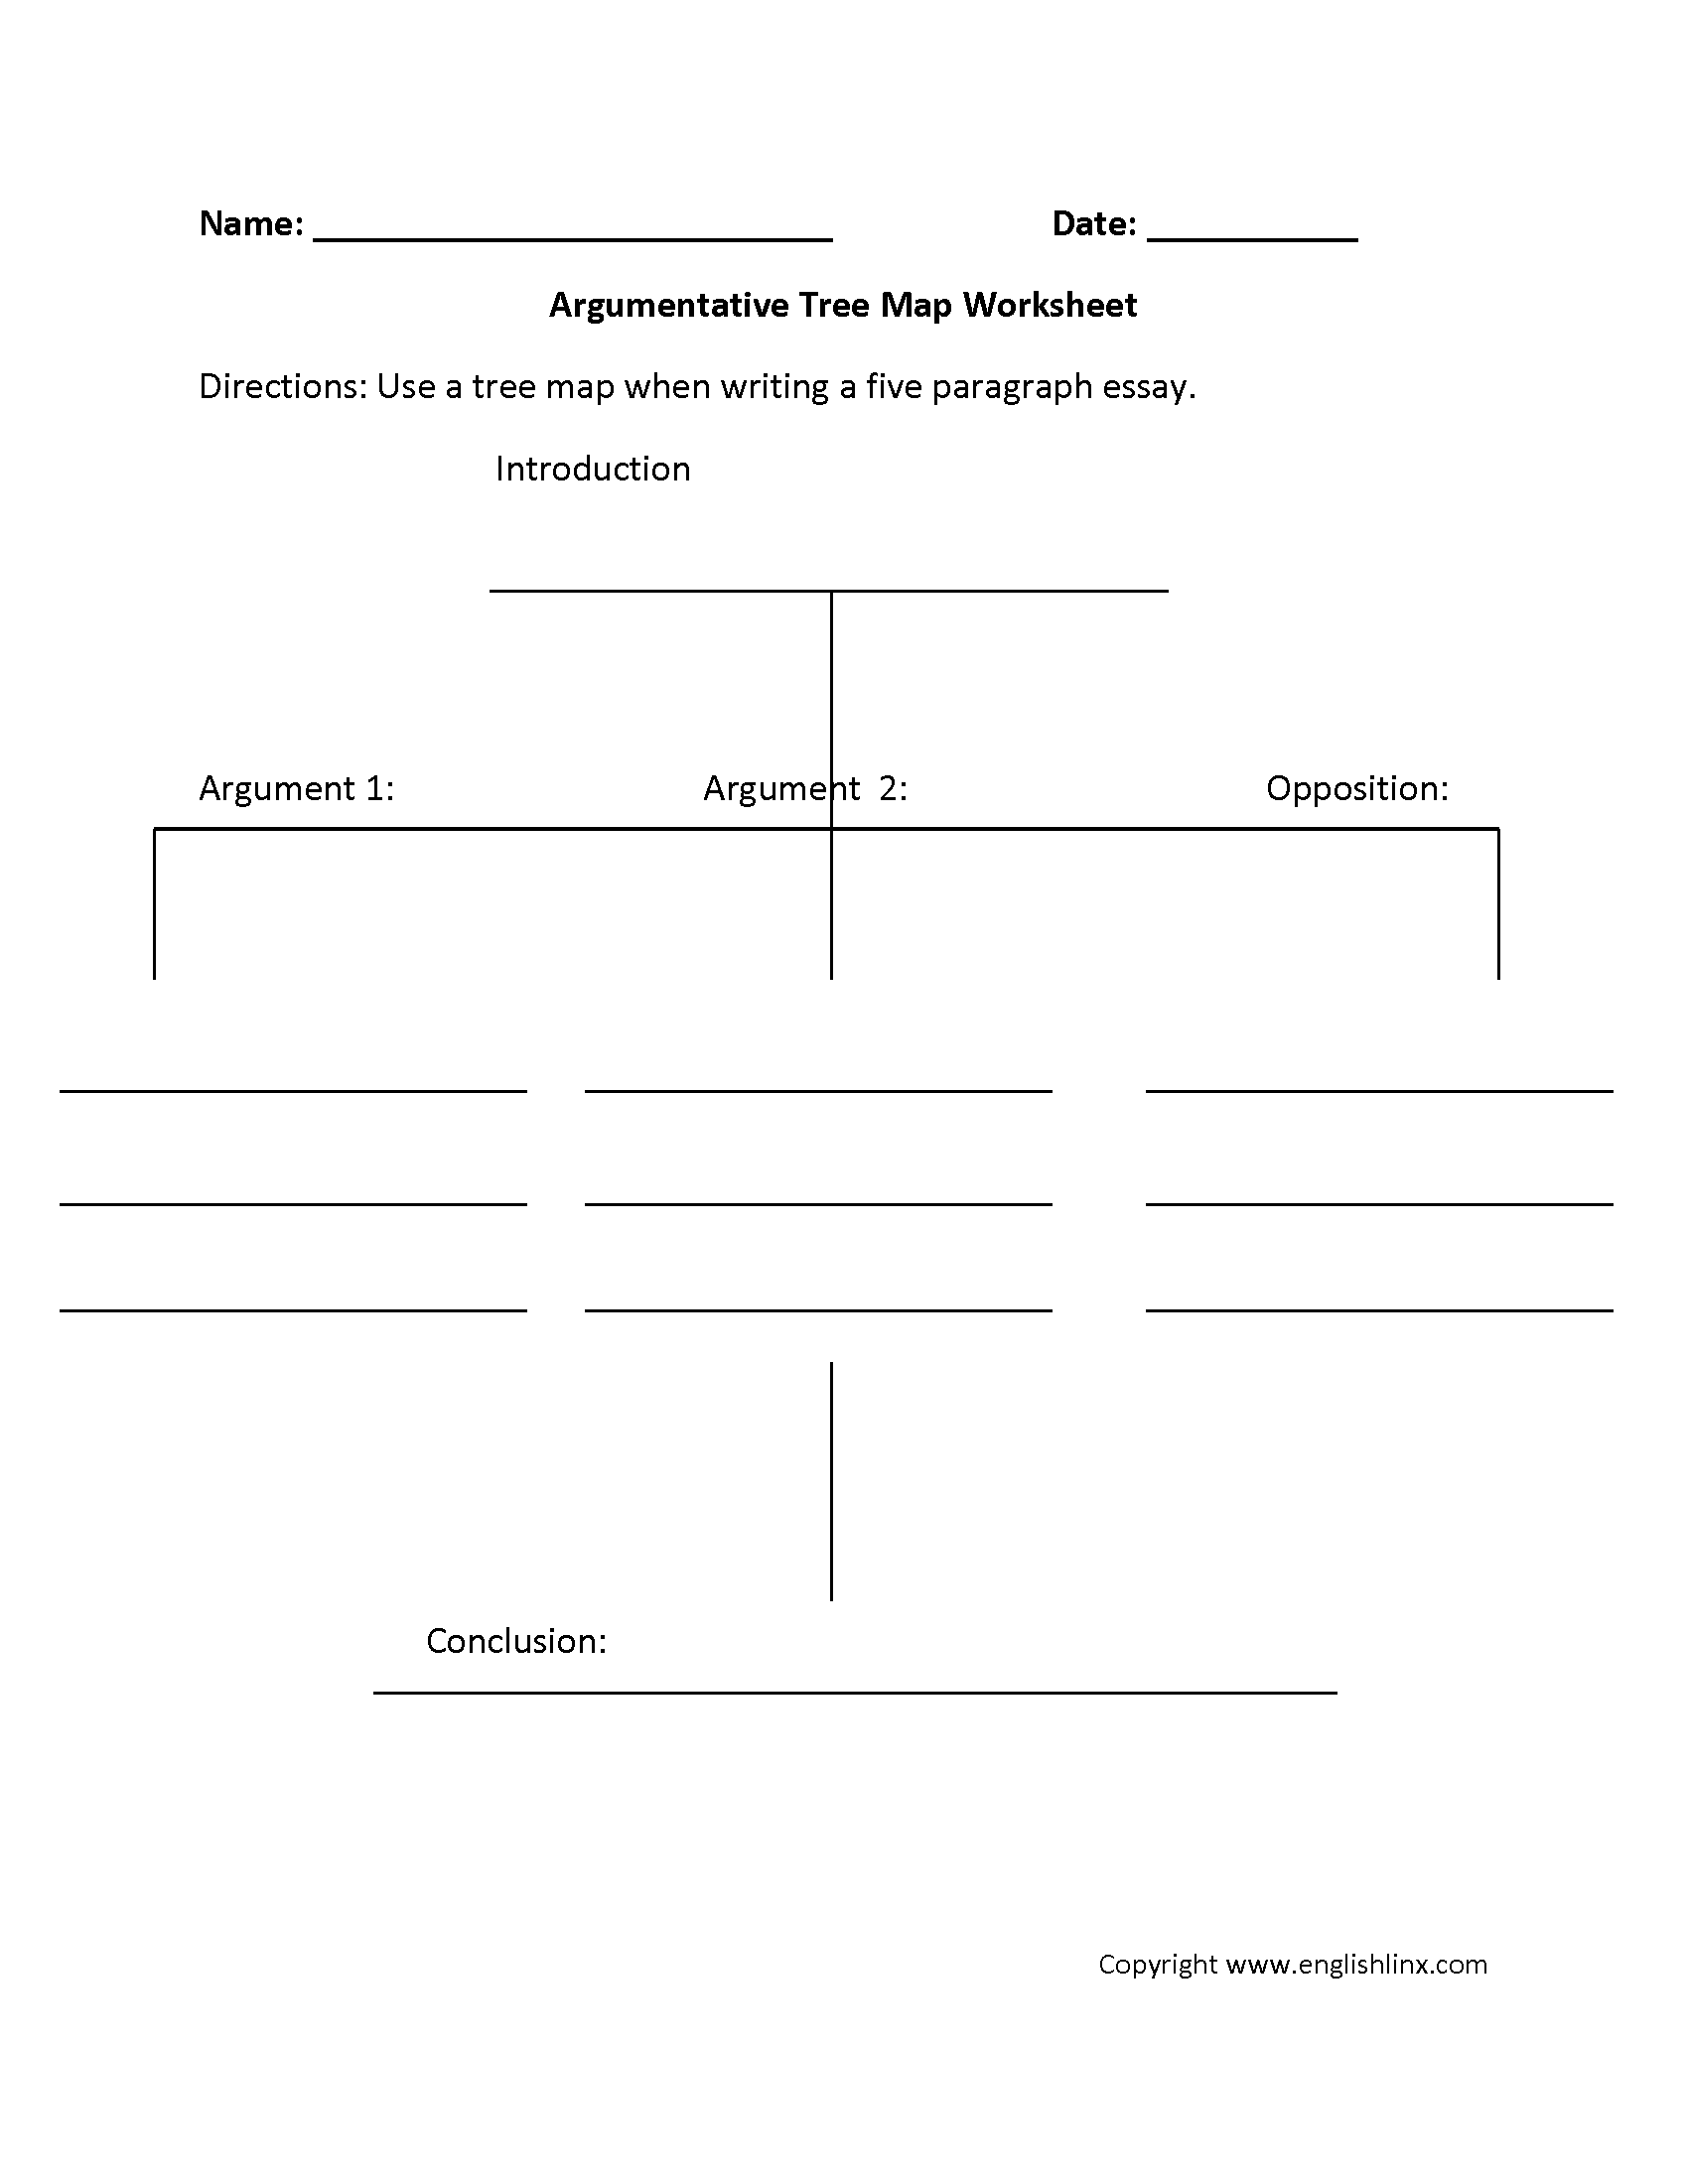 Reading Worksheets – Ethos Pathos Logos Worksheet